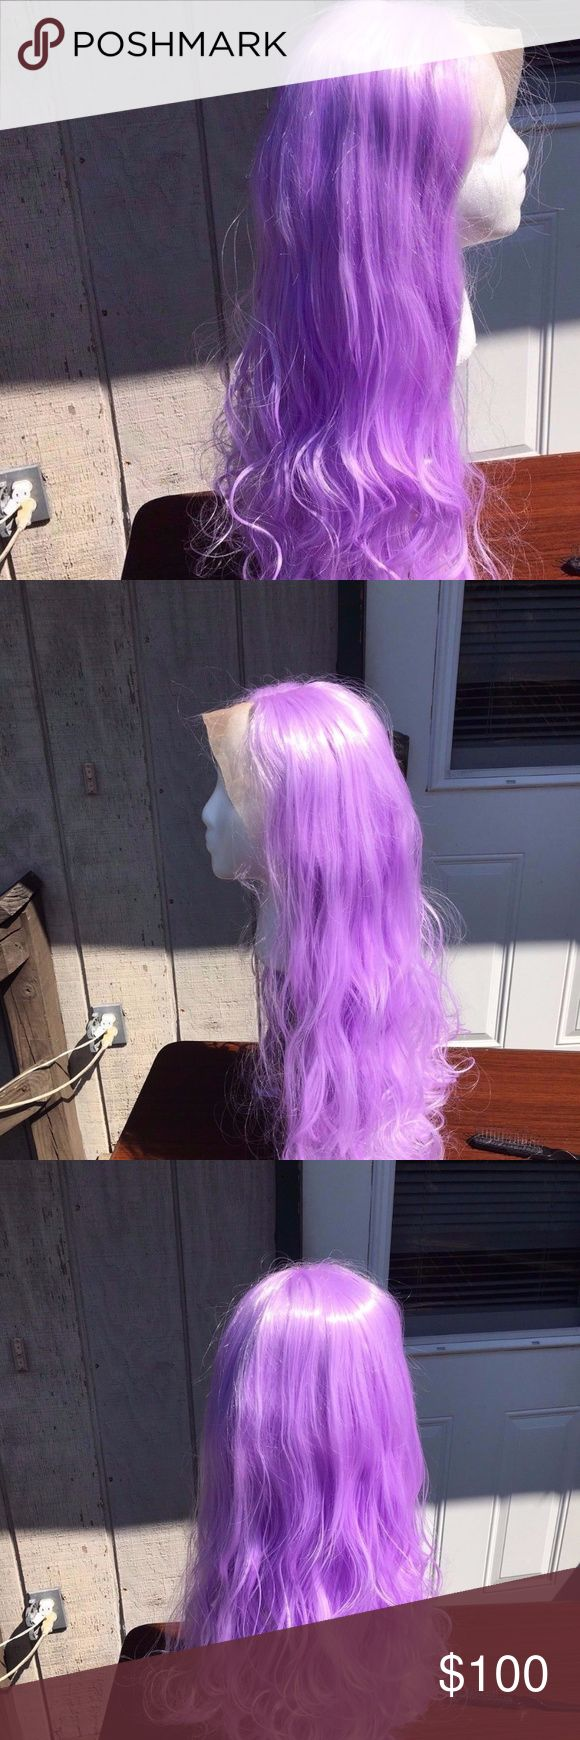 """Long Lila Purple Wig Cosplay Halloween This is """"Lilly""""!  This is a beautiful very light Lilac/Purple colour. This wig is a beautiful long versatile wig with soft big waves and is slightly layered on the ends, it is 22 inches long from the nape when pulled straight. It is HEAT SAFE, you can easily restyle it with heat appliances on medium-low.  The wig has a side part lace extension.  The wig has light lace and can easily be blended out with contour powders. 3 combs sewn in for extra…"""